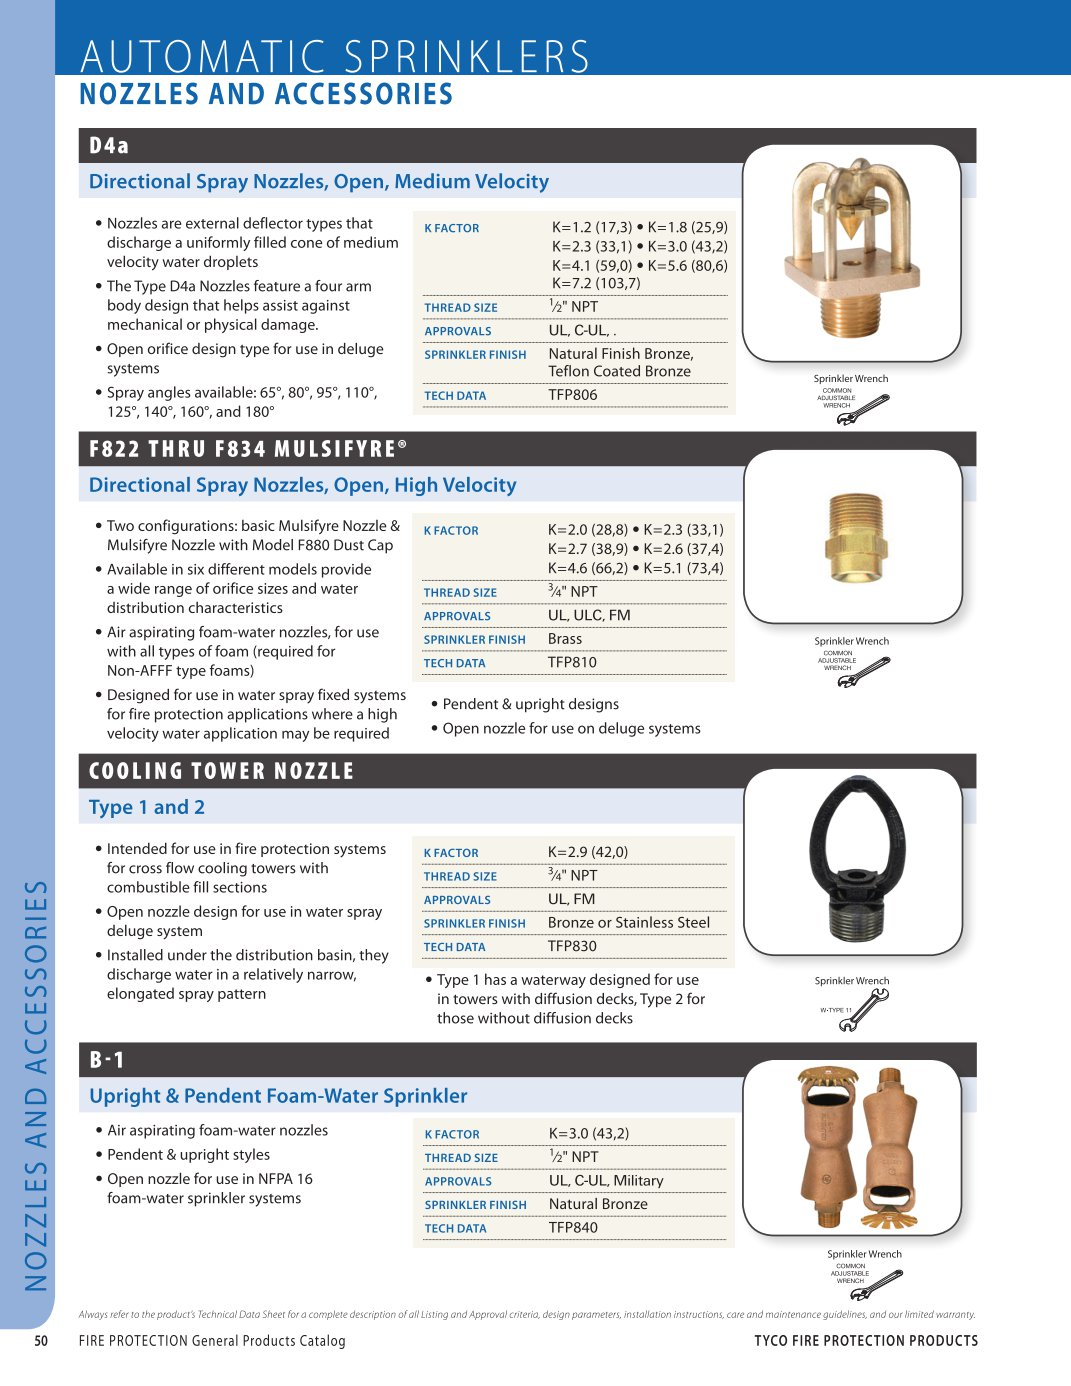 Tyco Fire Protection Products - General Products Catalog